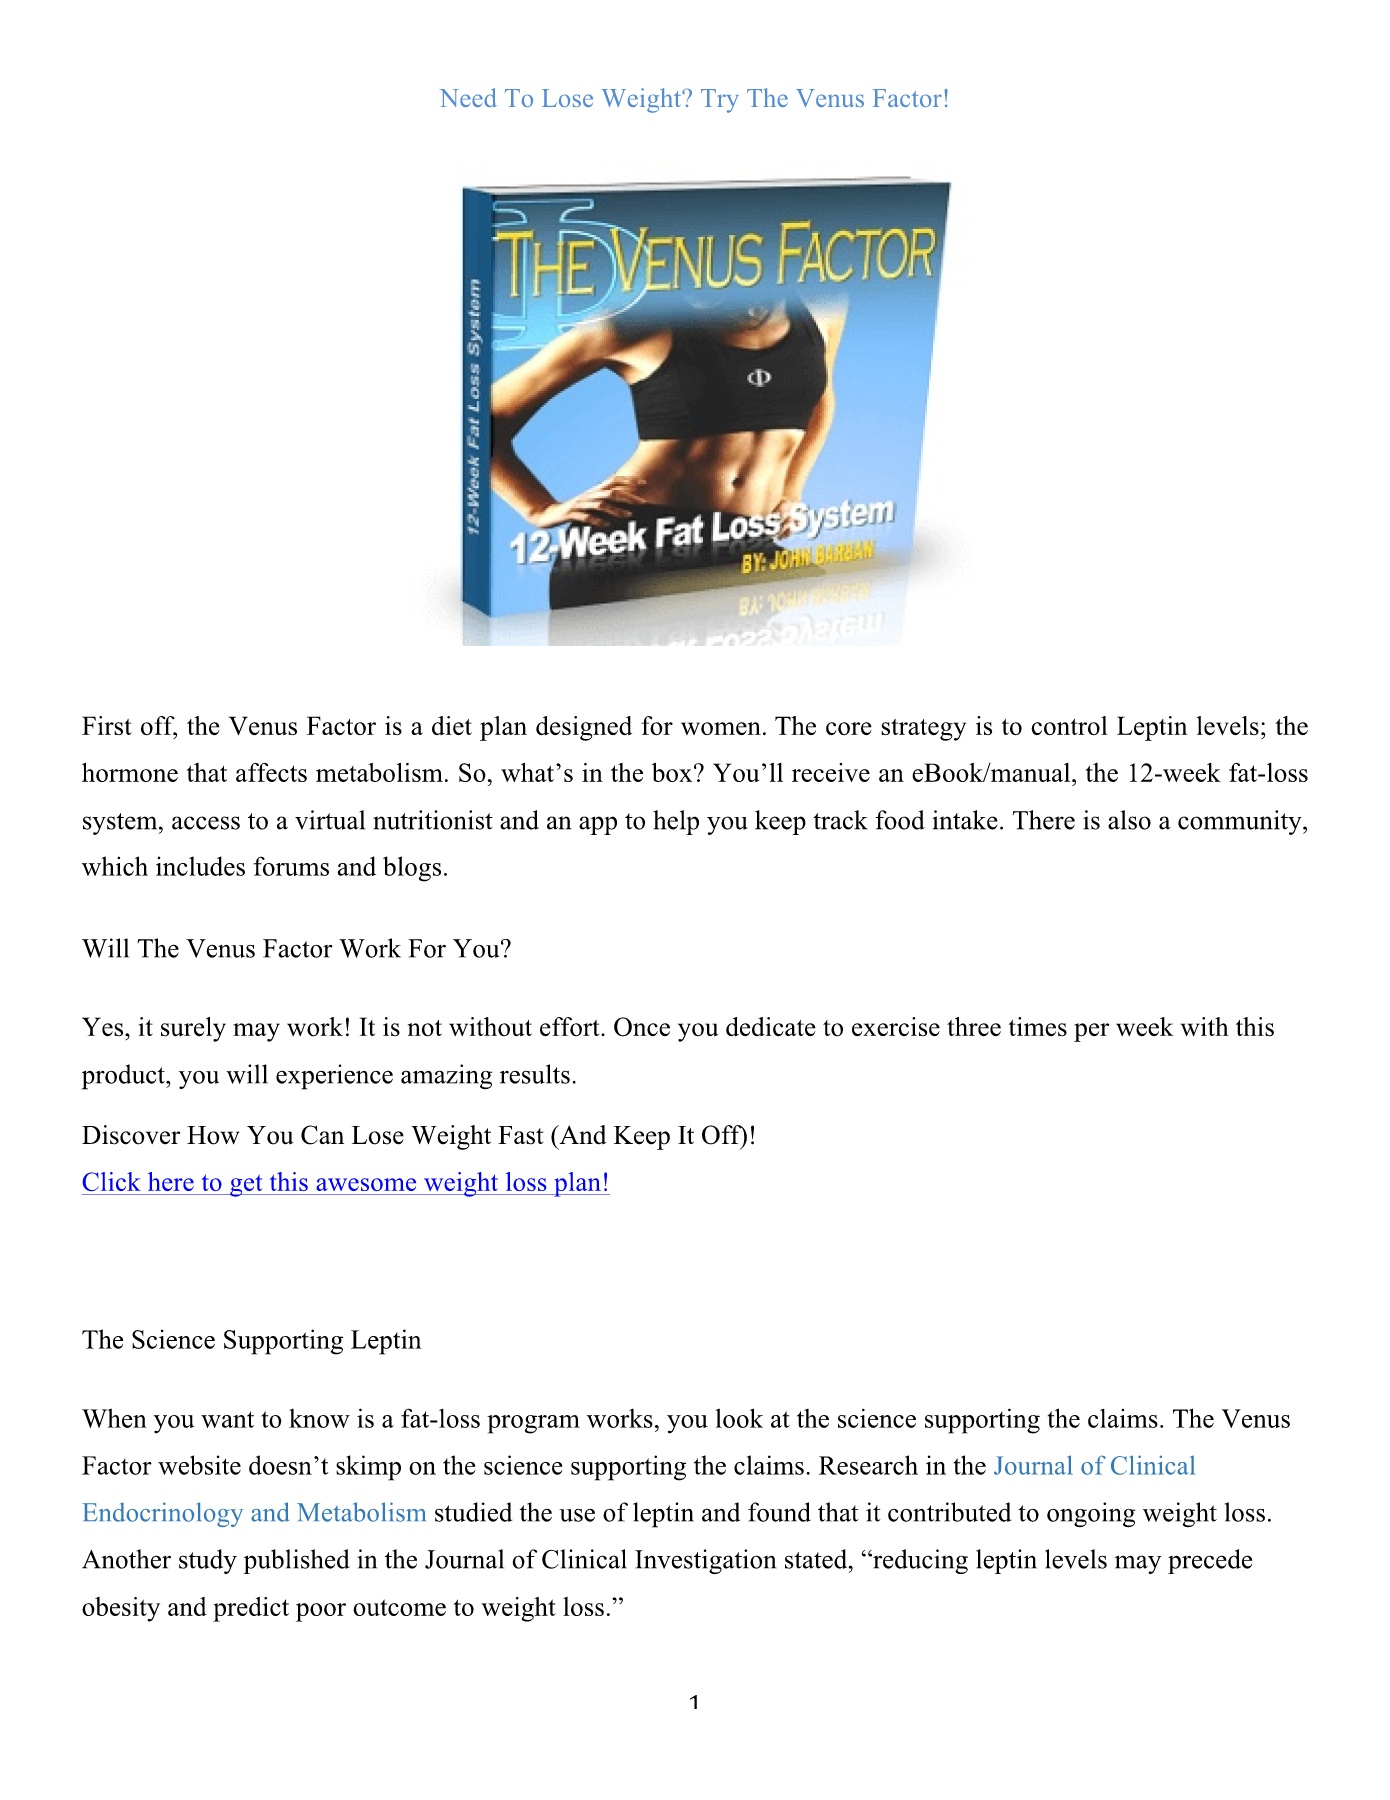 Lose Weight With Venus Factor Flip Ebook Pages 1 3 Anyflip Anyflip